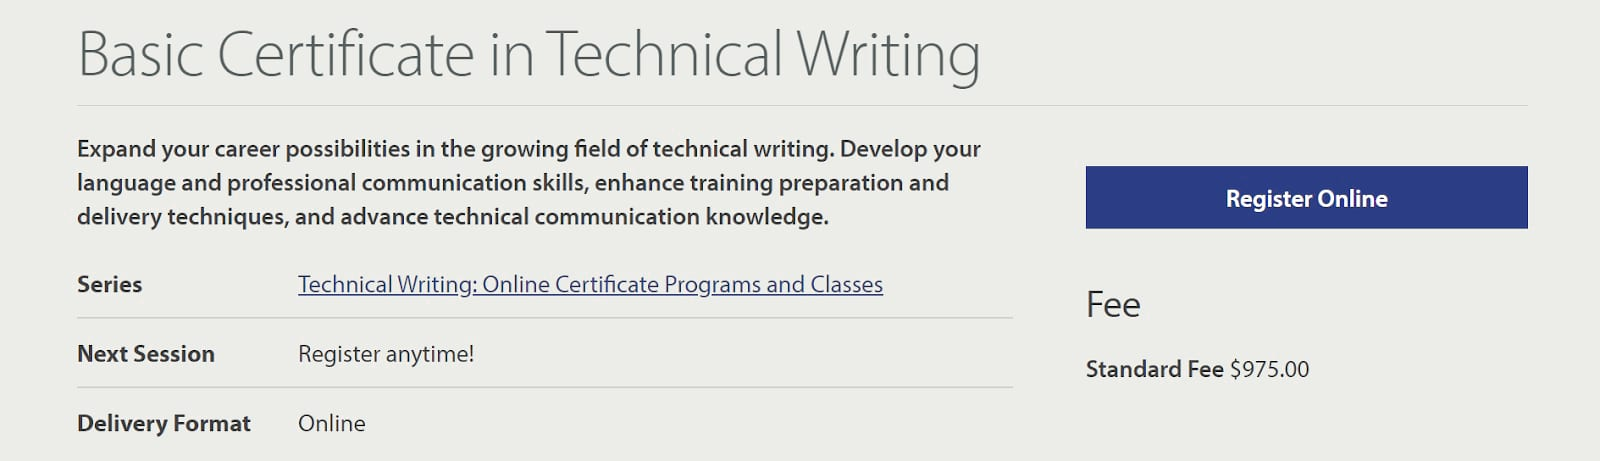 Best Technical Writing Courses Compared